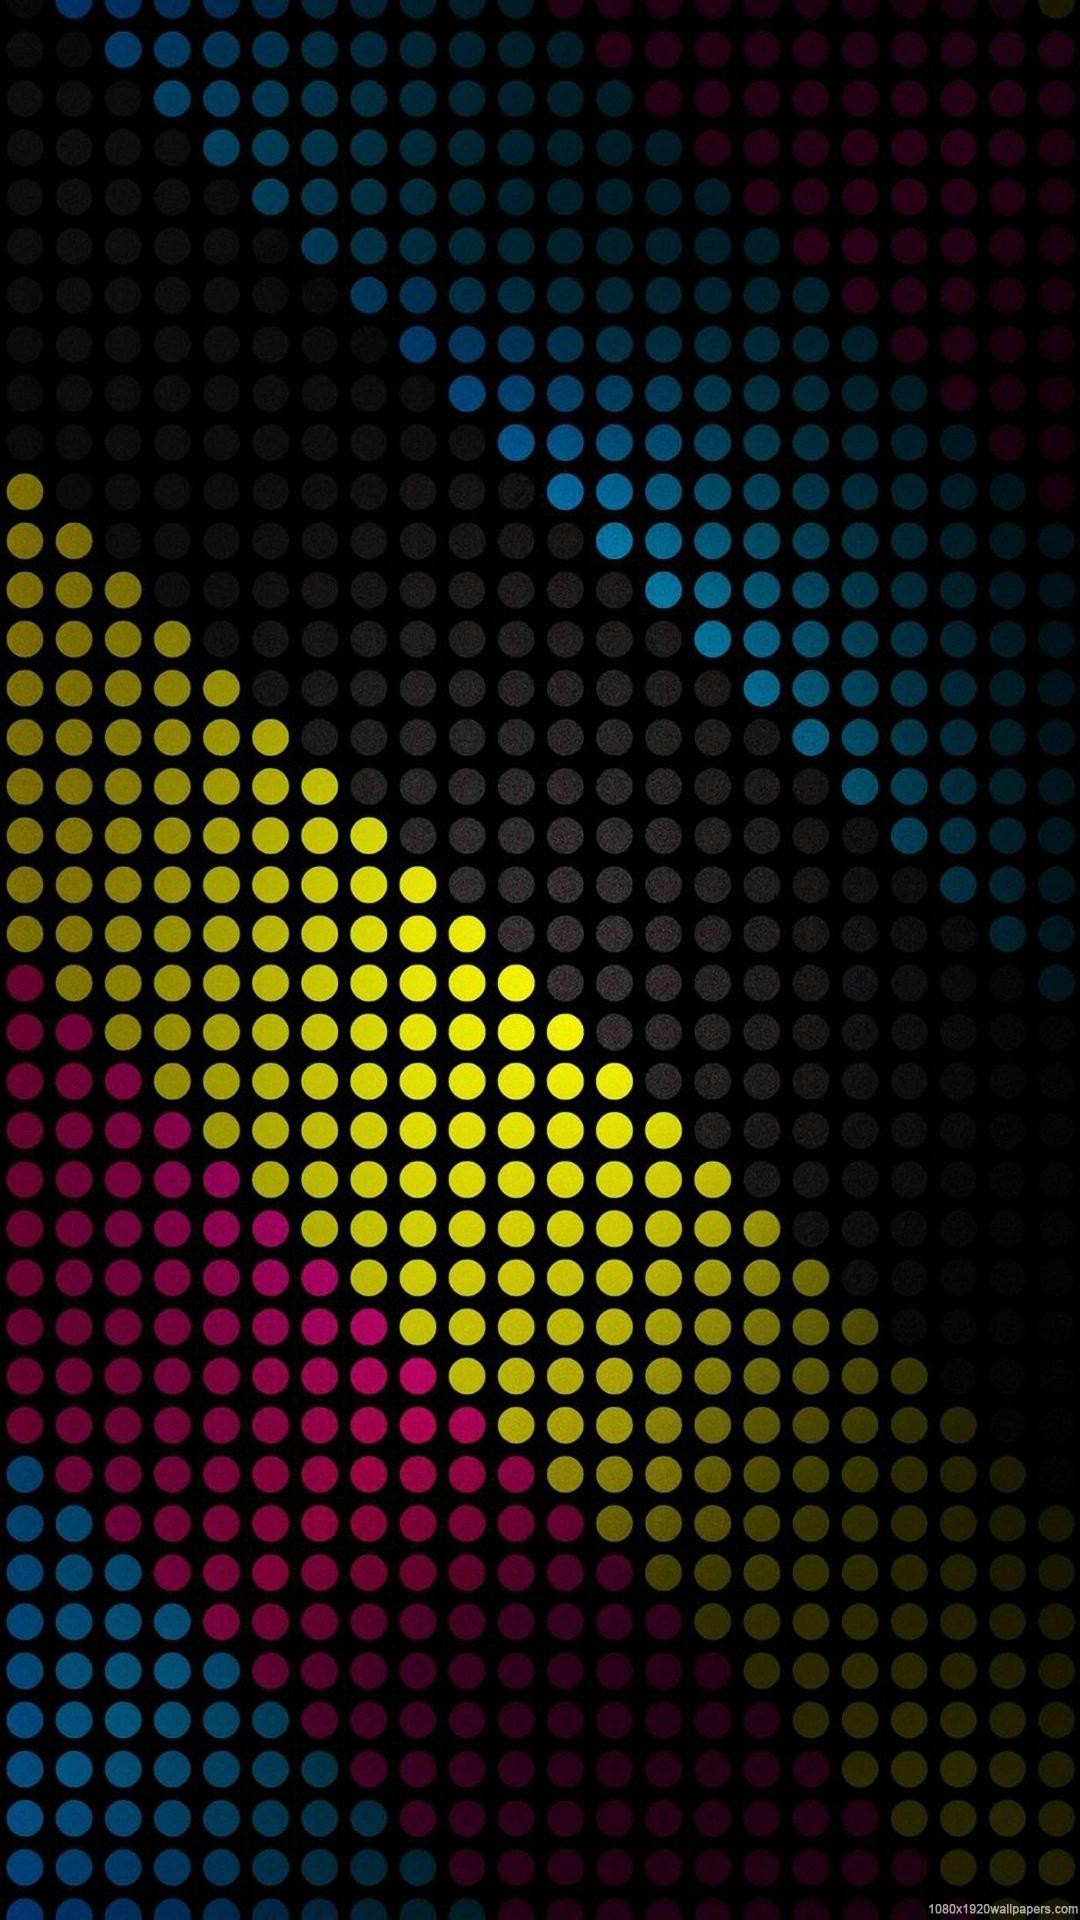 42 hd wallpapers for android download free awesome hd for Abstract smartphone wallpaper